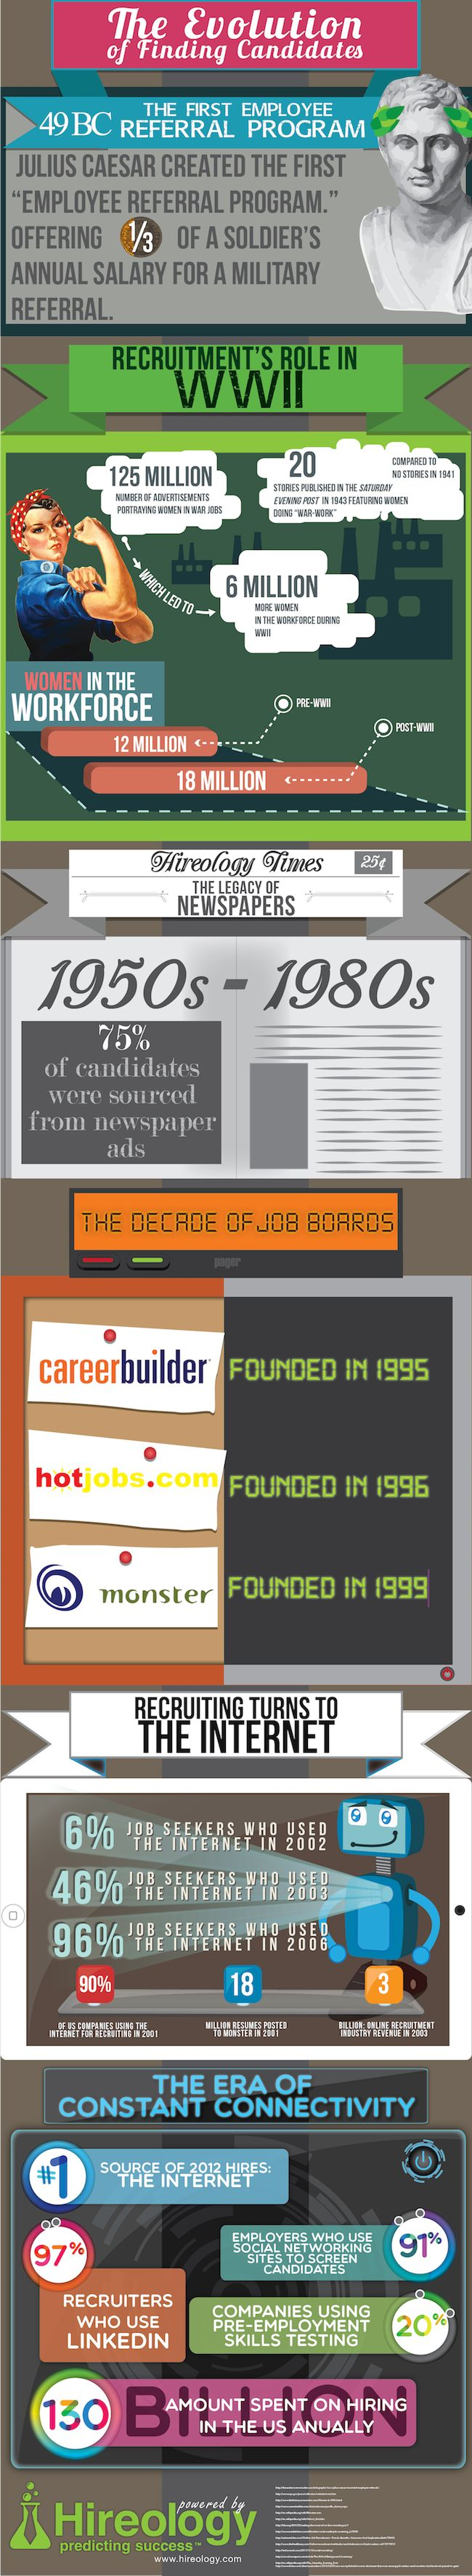 The Evolution of Finding Candidates [INFOGRAPHIC] via @The Undercover Recruiter